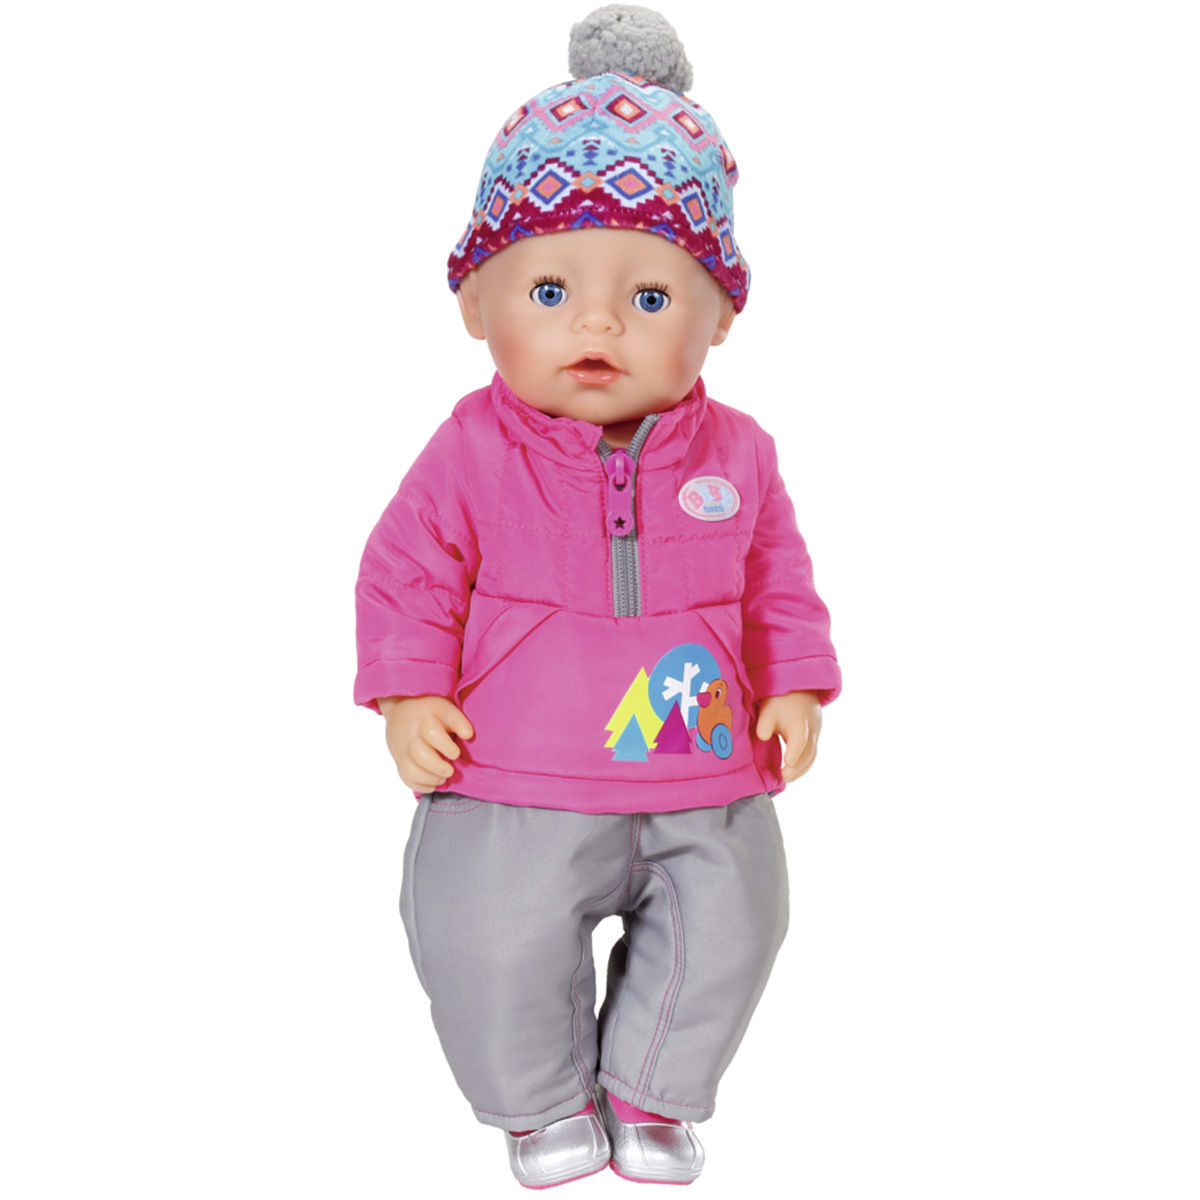 Shop Baby Annabell Deluxe Set Winter Fun. Free delivery and returns on eligible orders of £20 or tiodegwiege.cfs: 7.